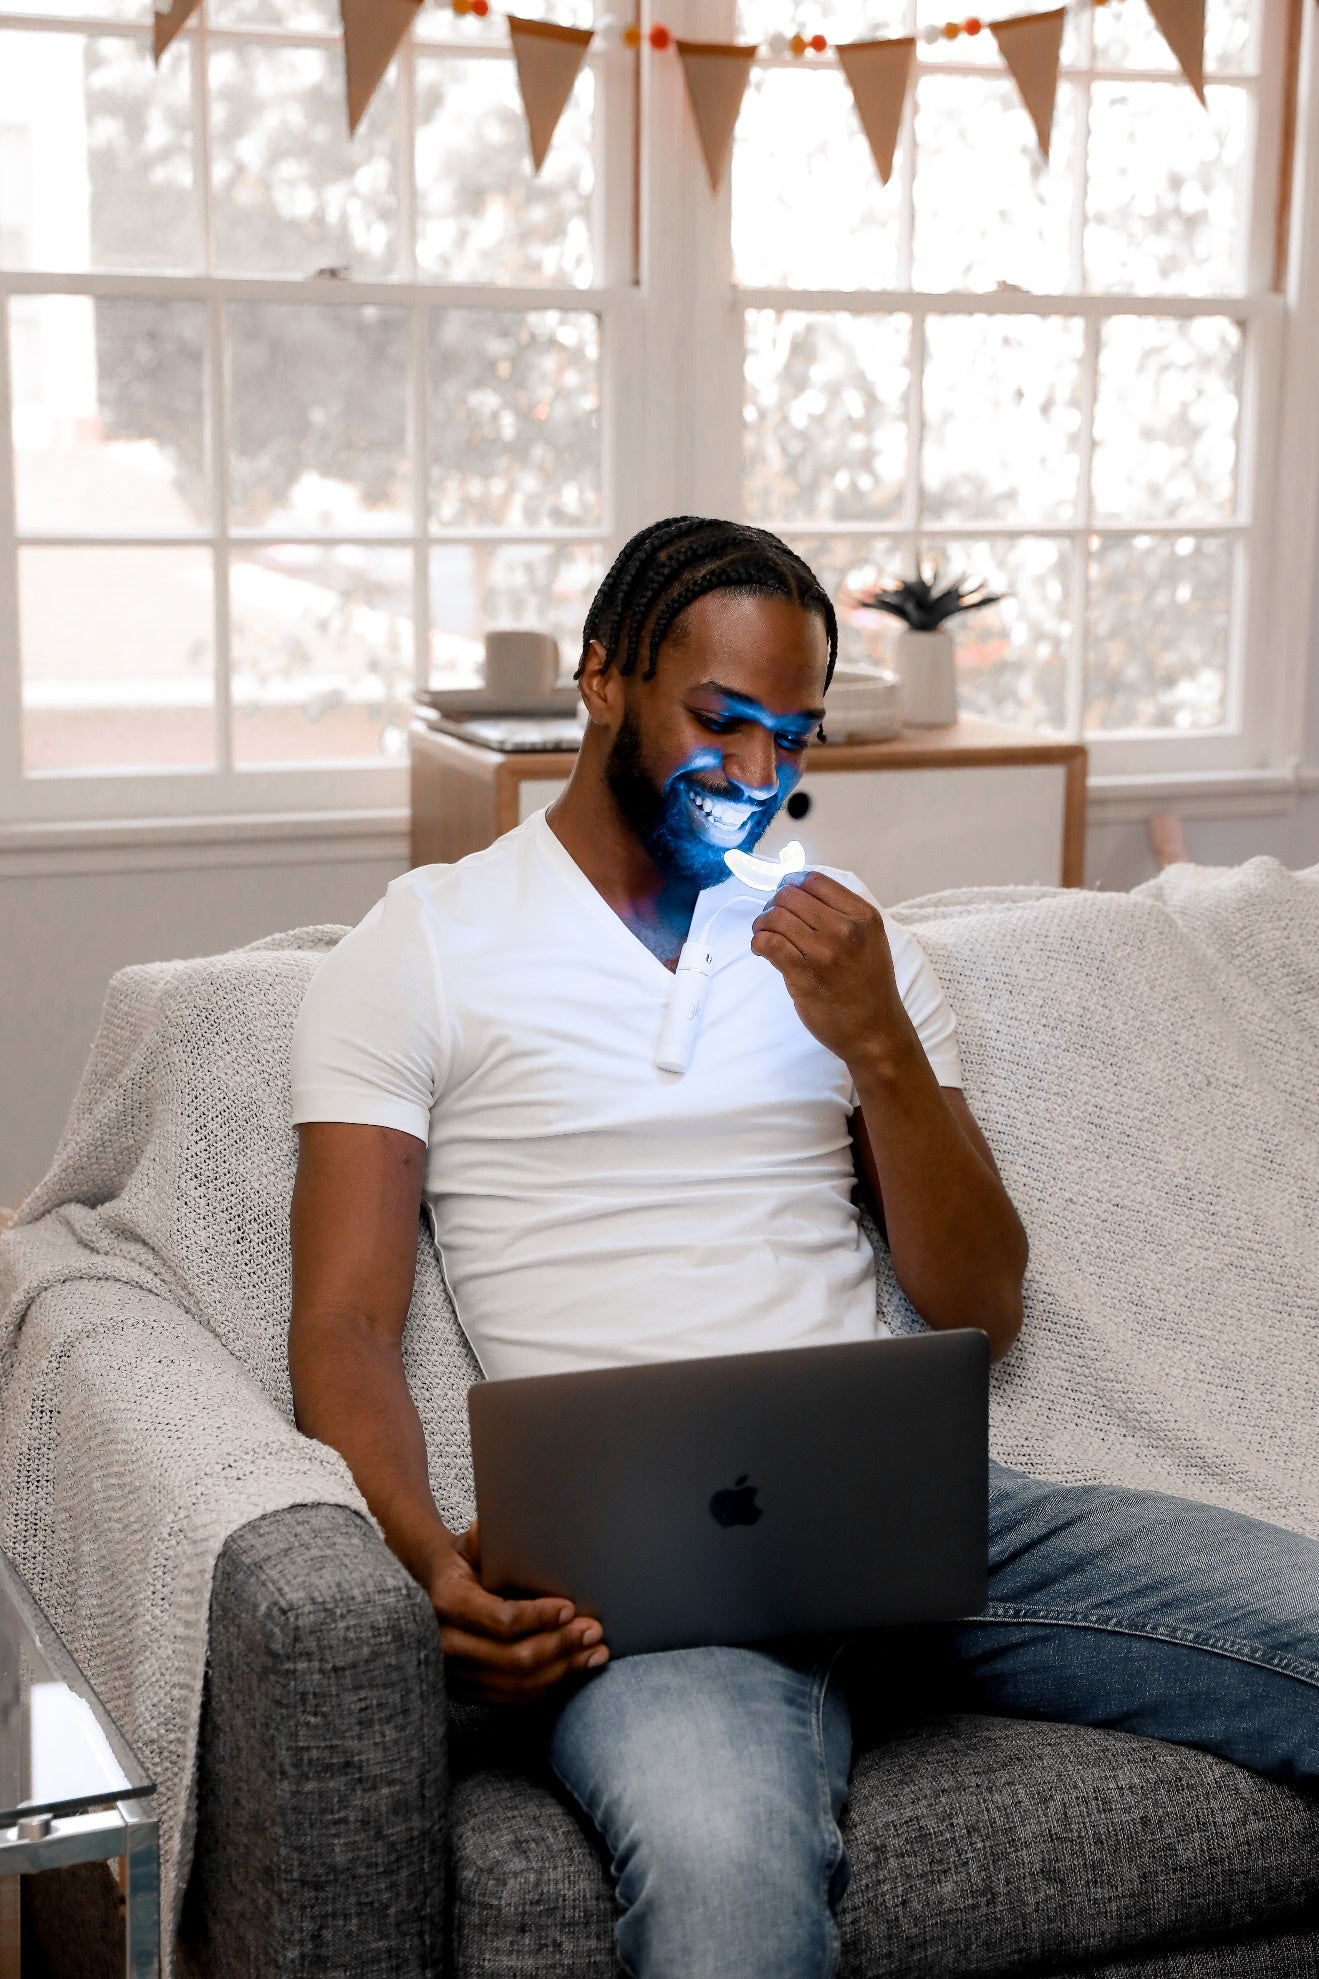 A person with a mask on his face sitting on a couch with a computer